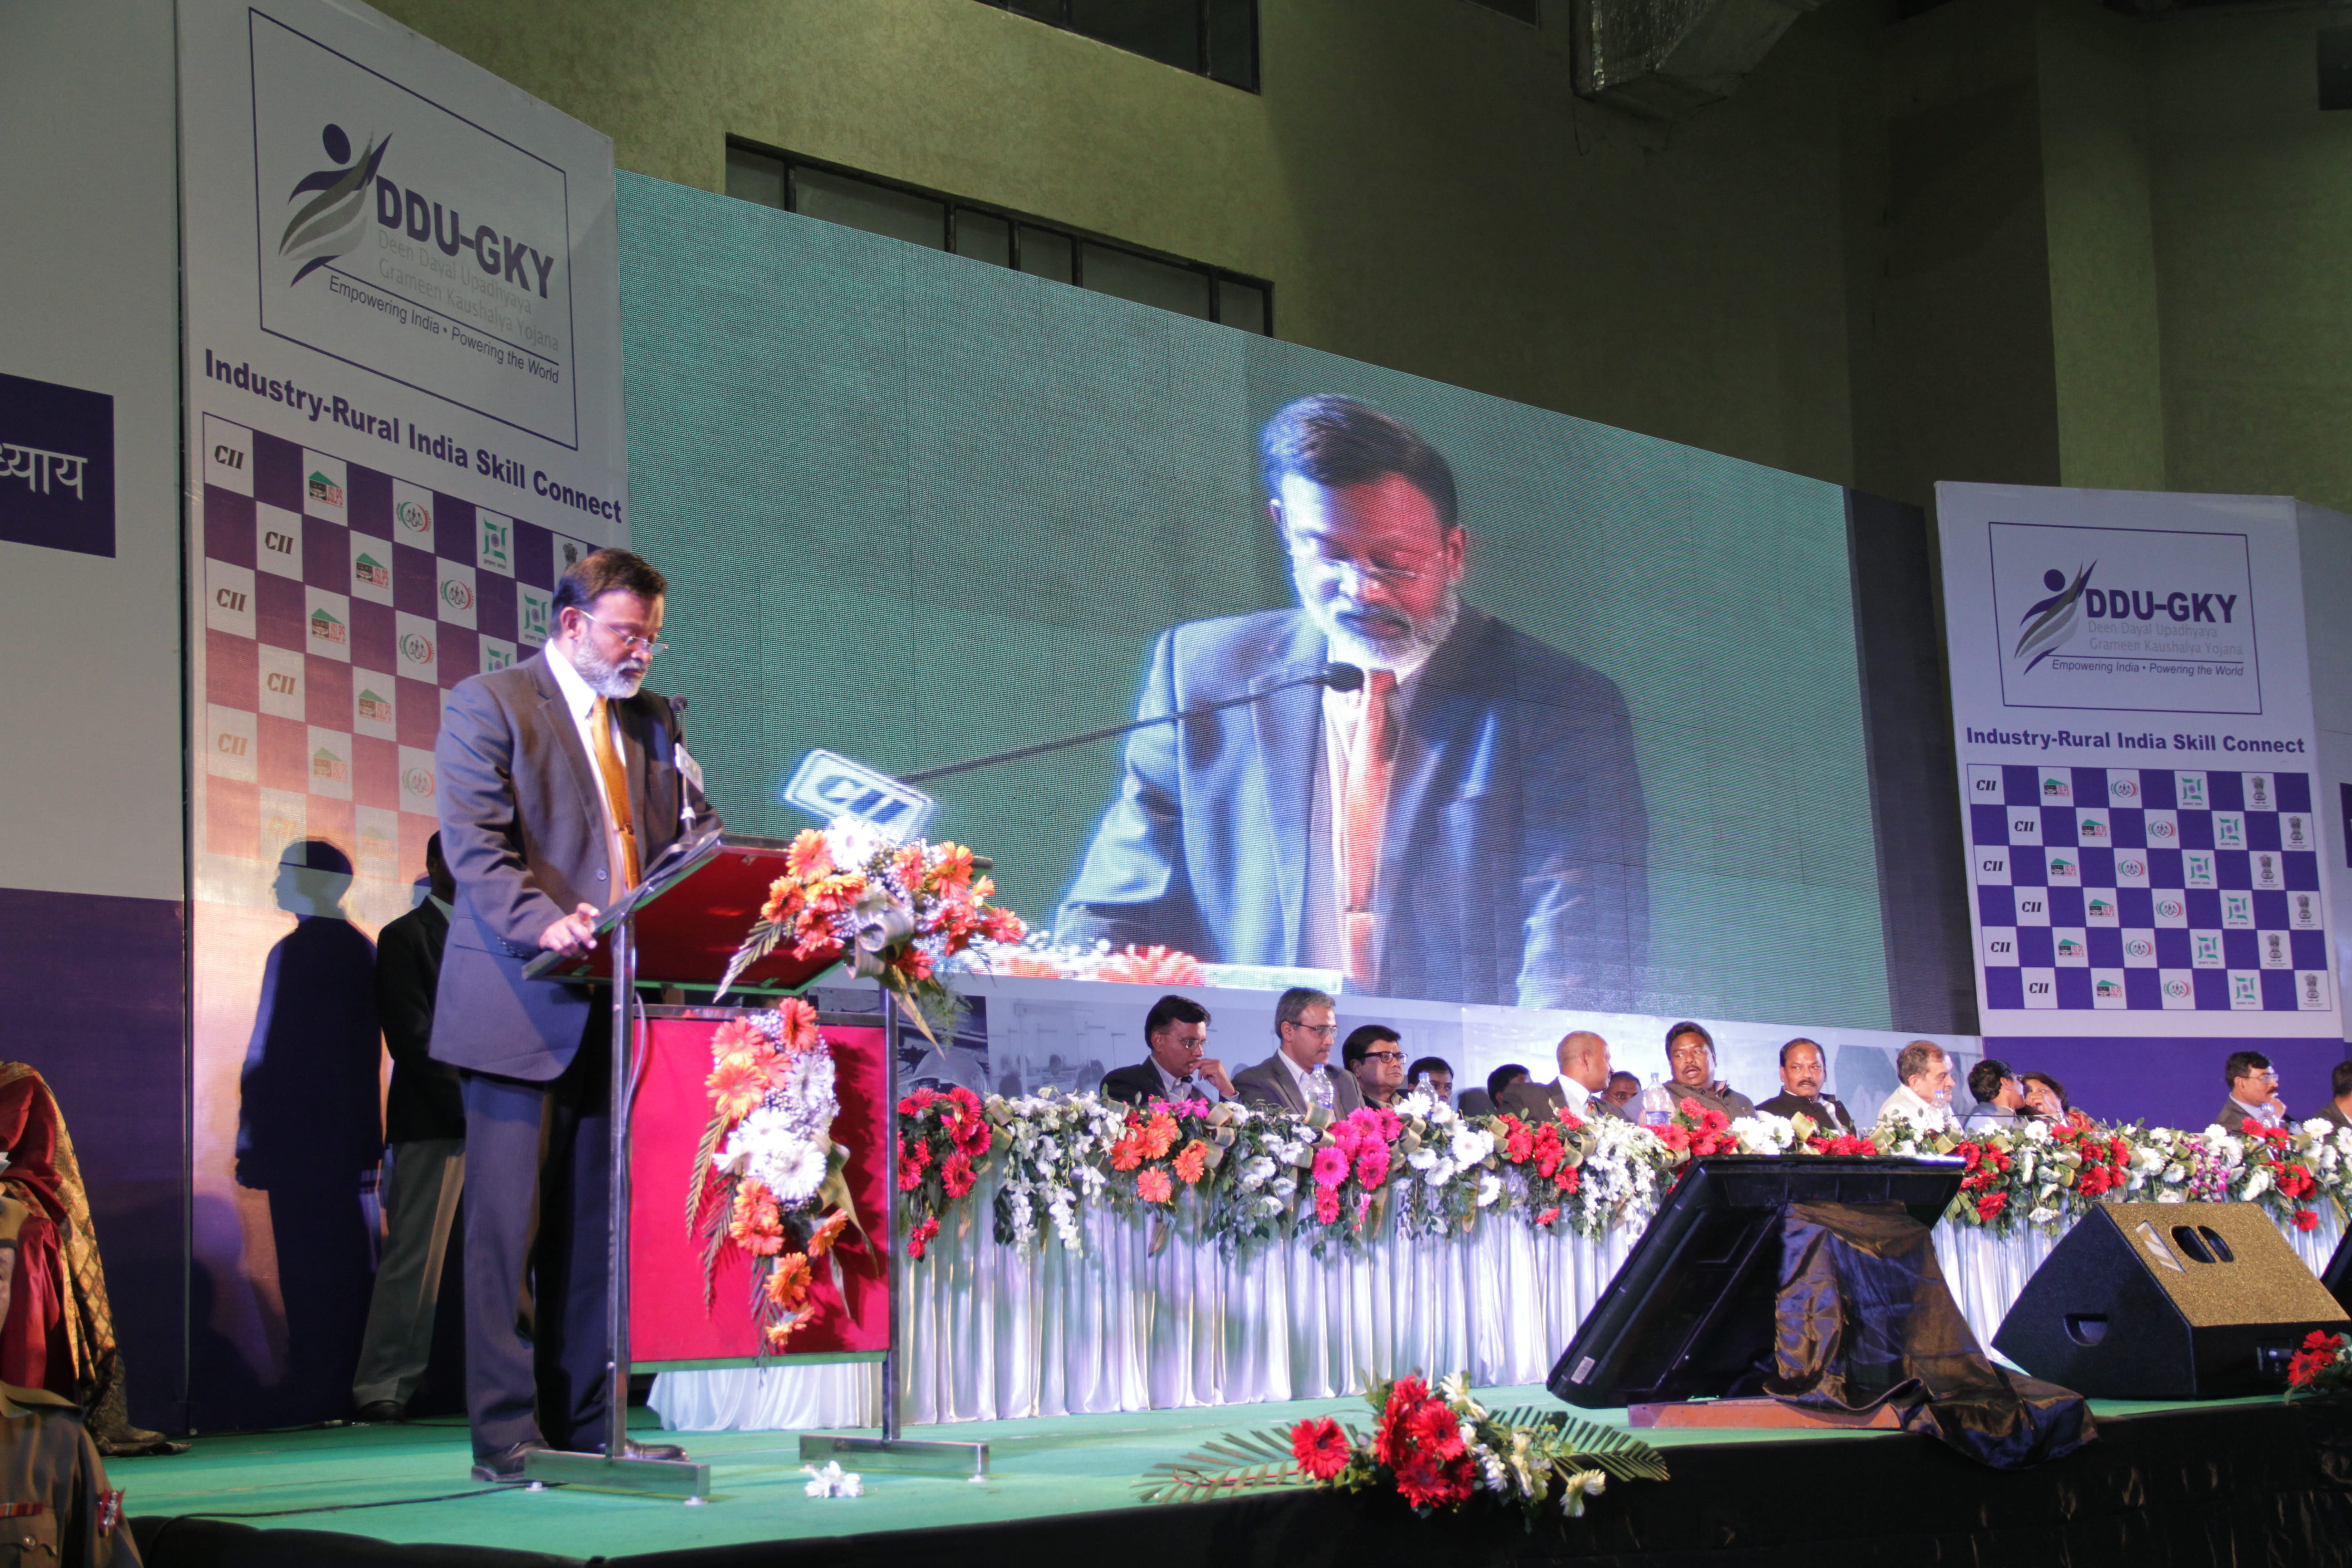 JS, Skills, MORD, giving vote of thanks at Industry-Rural India Connect